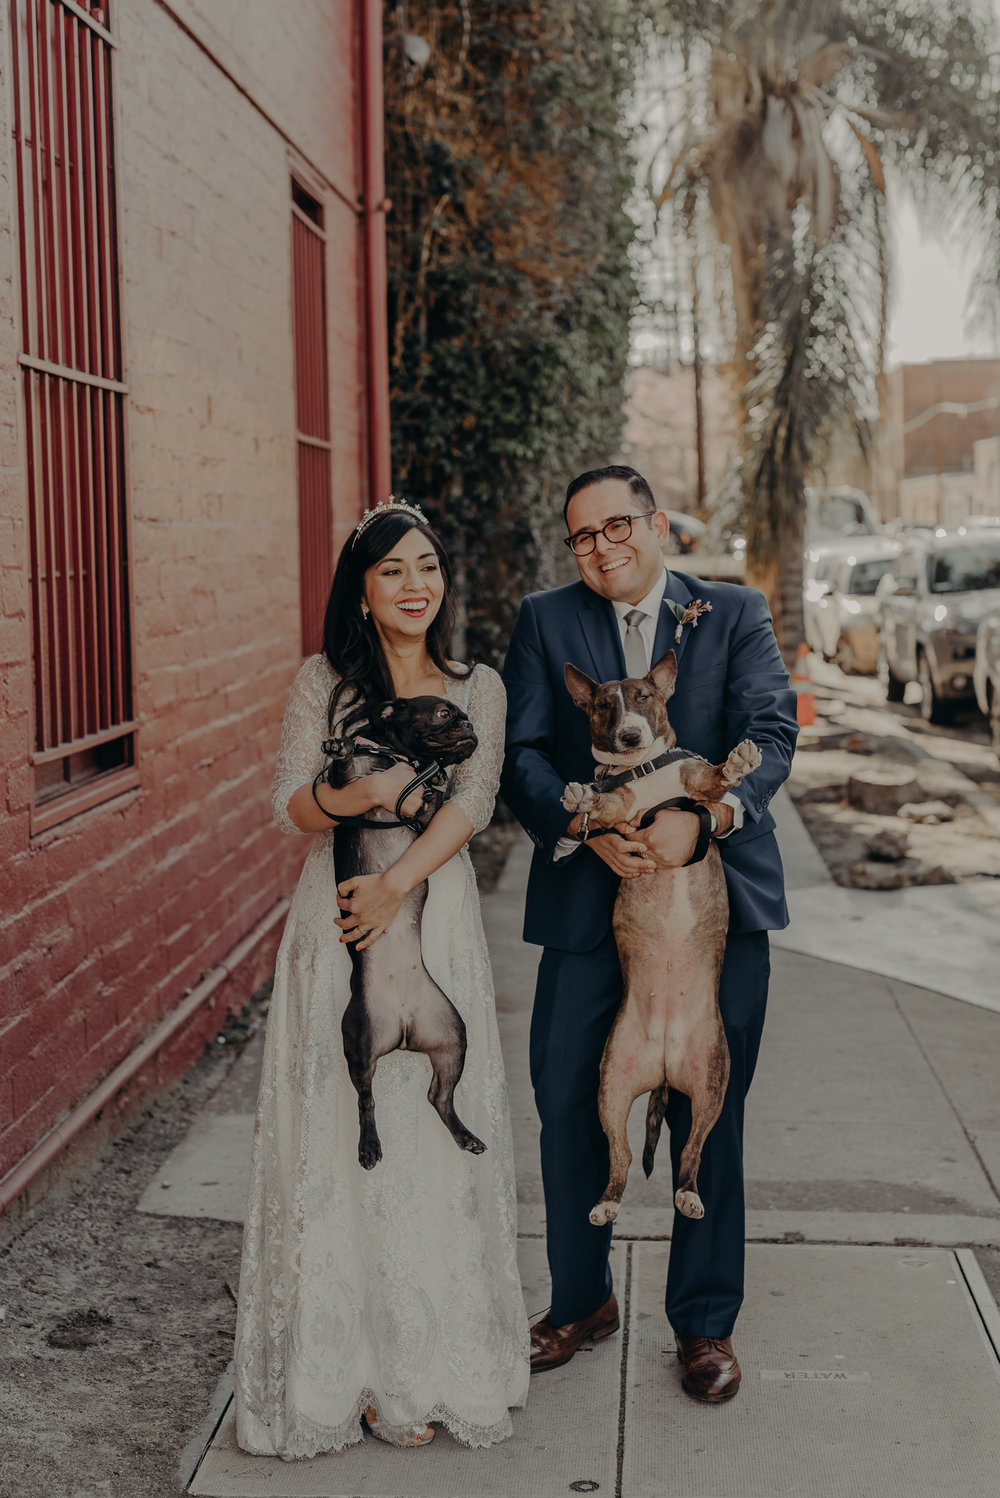 IsaiahAndTaylor.com - Downtown Los Angeles Wedding Photographer - Millwick Wedding - Smog Shoppe-007.jpg